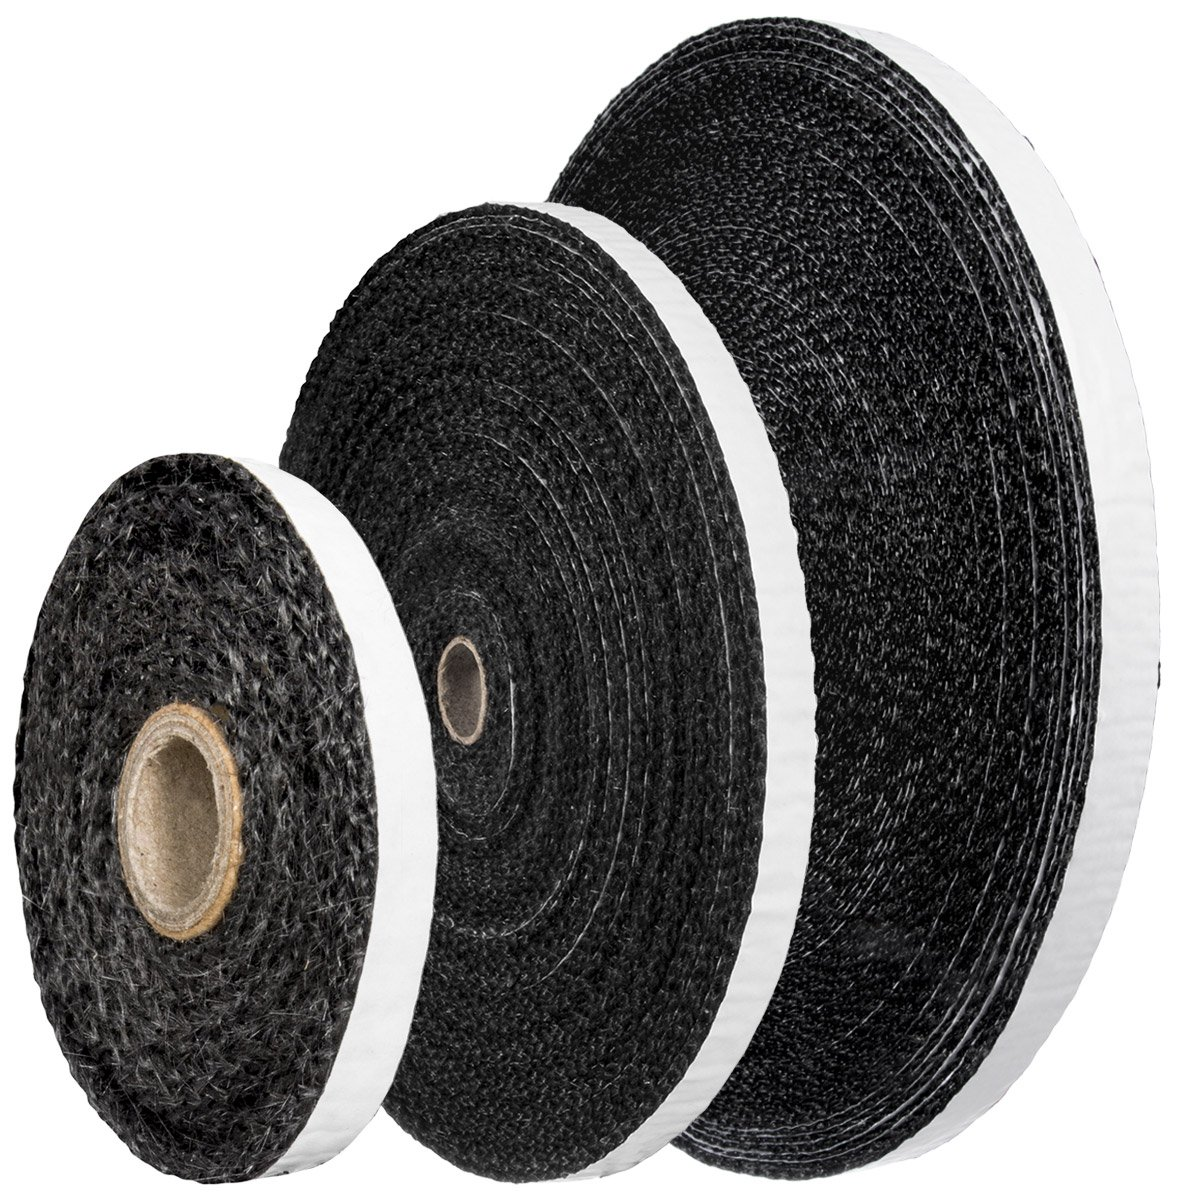 STEIGNER Self-Adhesive Fiberglass Tape SKD03 5 m 15x3 mm Black For Fireplaces Heat Resistant To Temperature up to 550° C or 1022° F